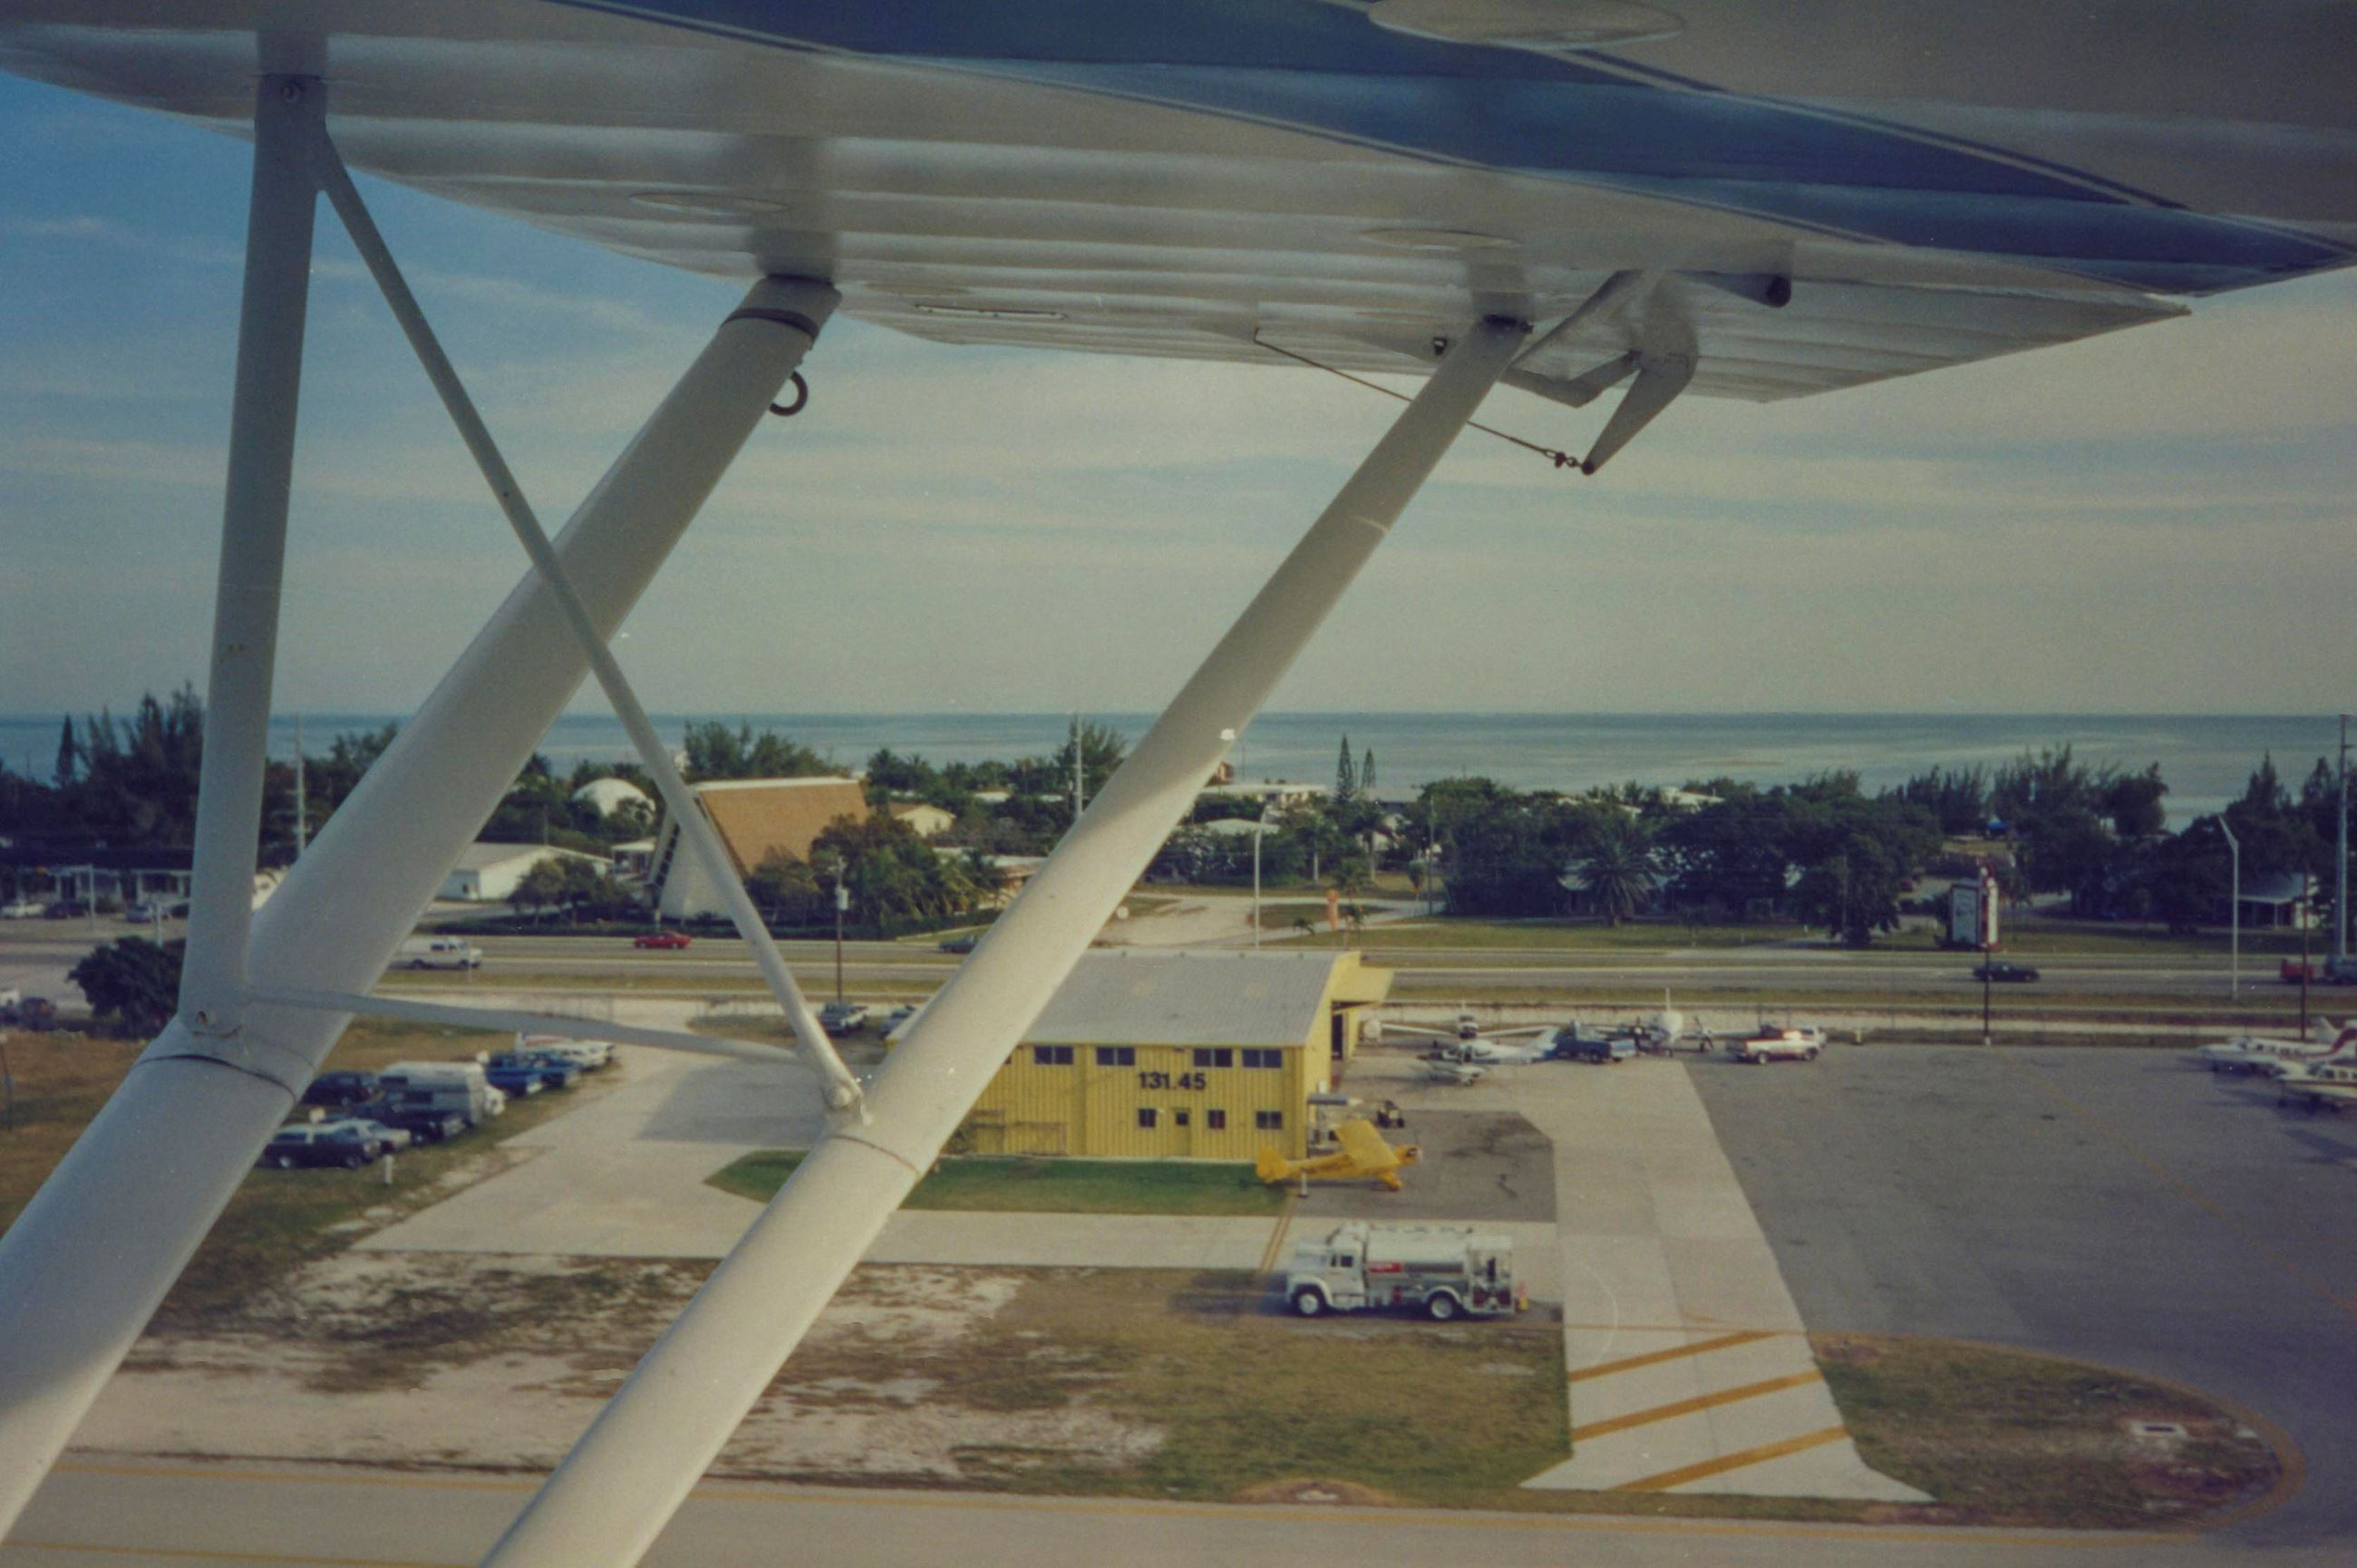 Historical Marathon Airport Photos - LR-62